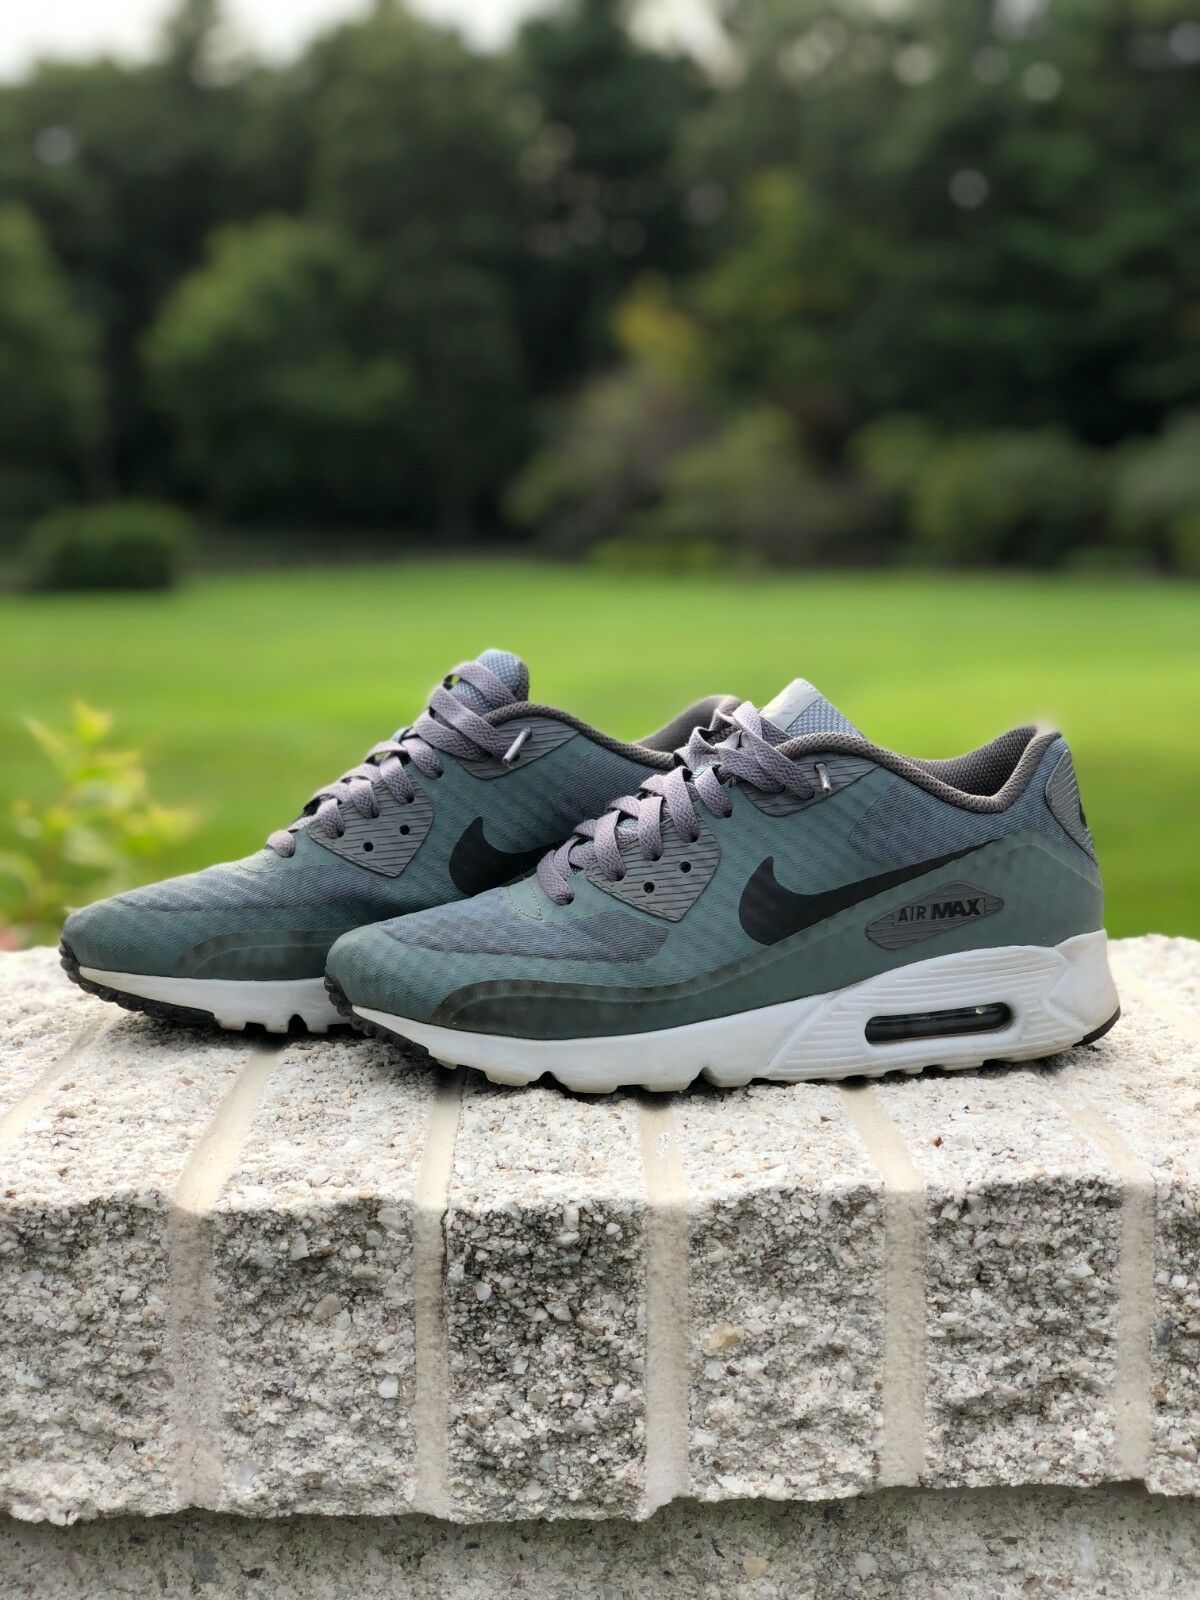 1f3765e2760c Mens Nike Nike Nike Air Max 90 Ultra Essential Size 7.5M Hasta Green Gray  Style